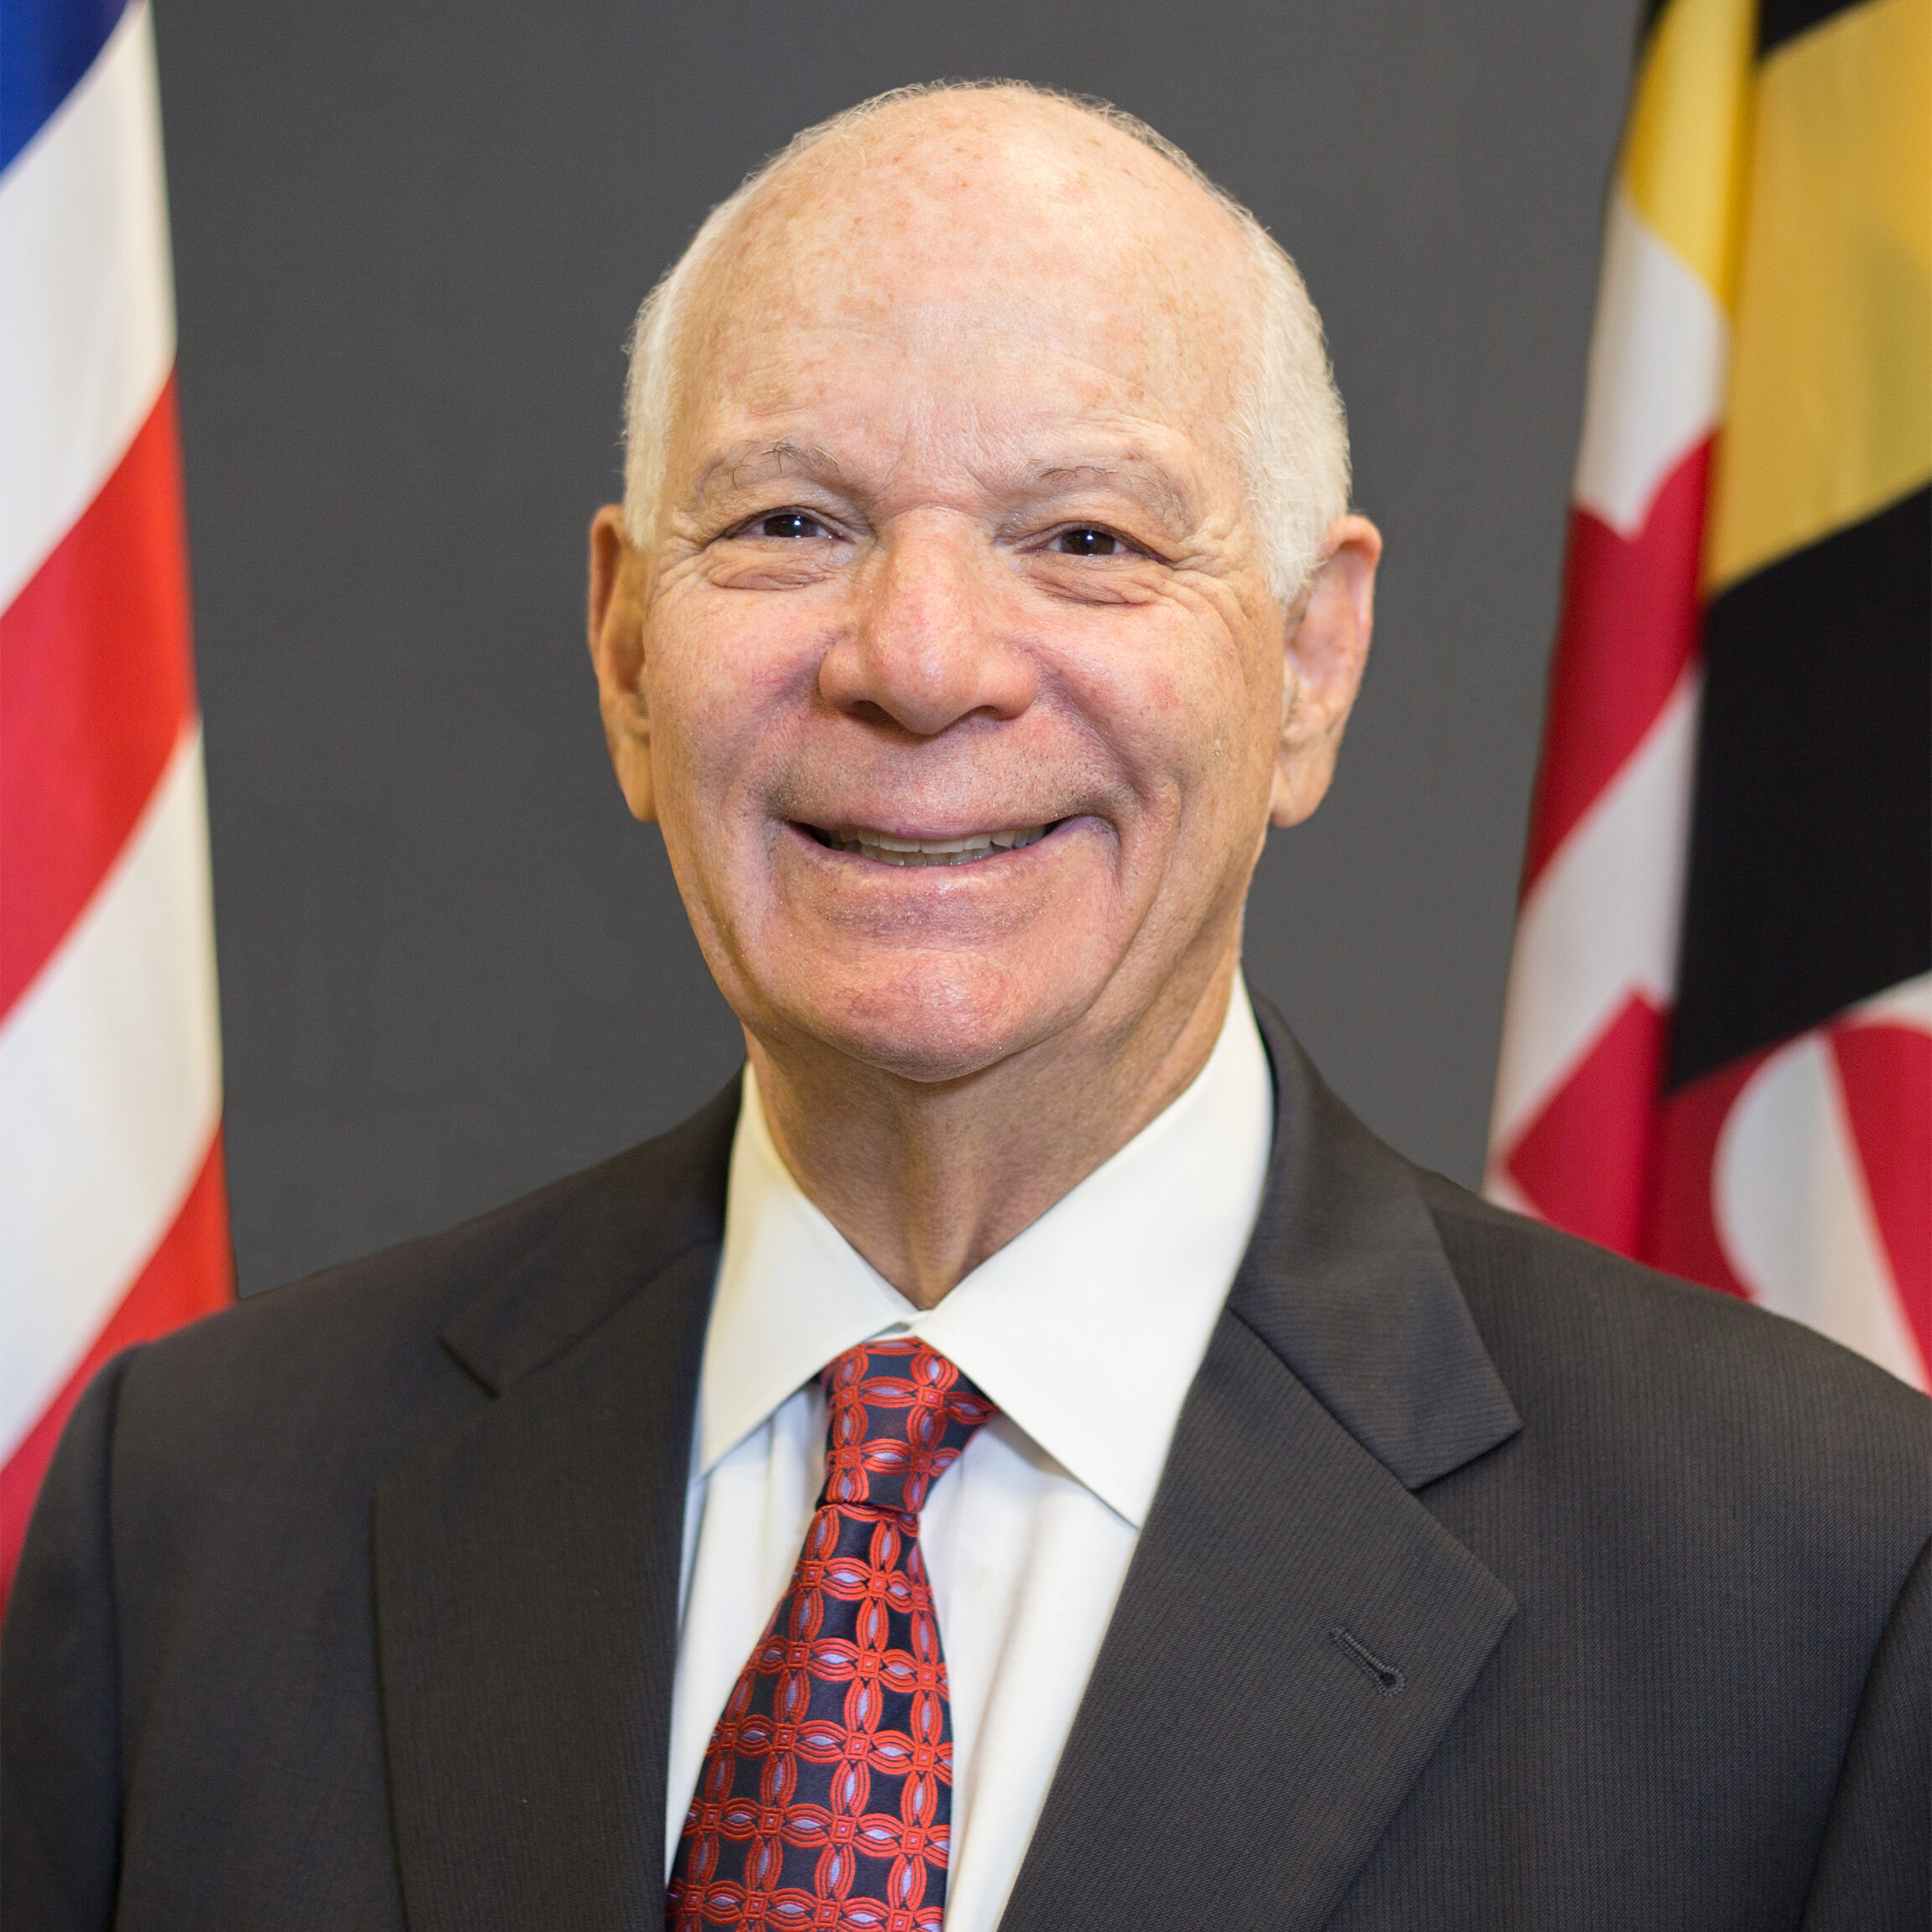 Ben_Cardin_official_Senate_portrait